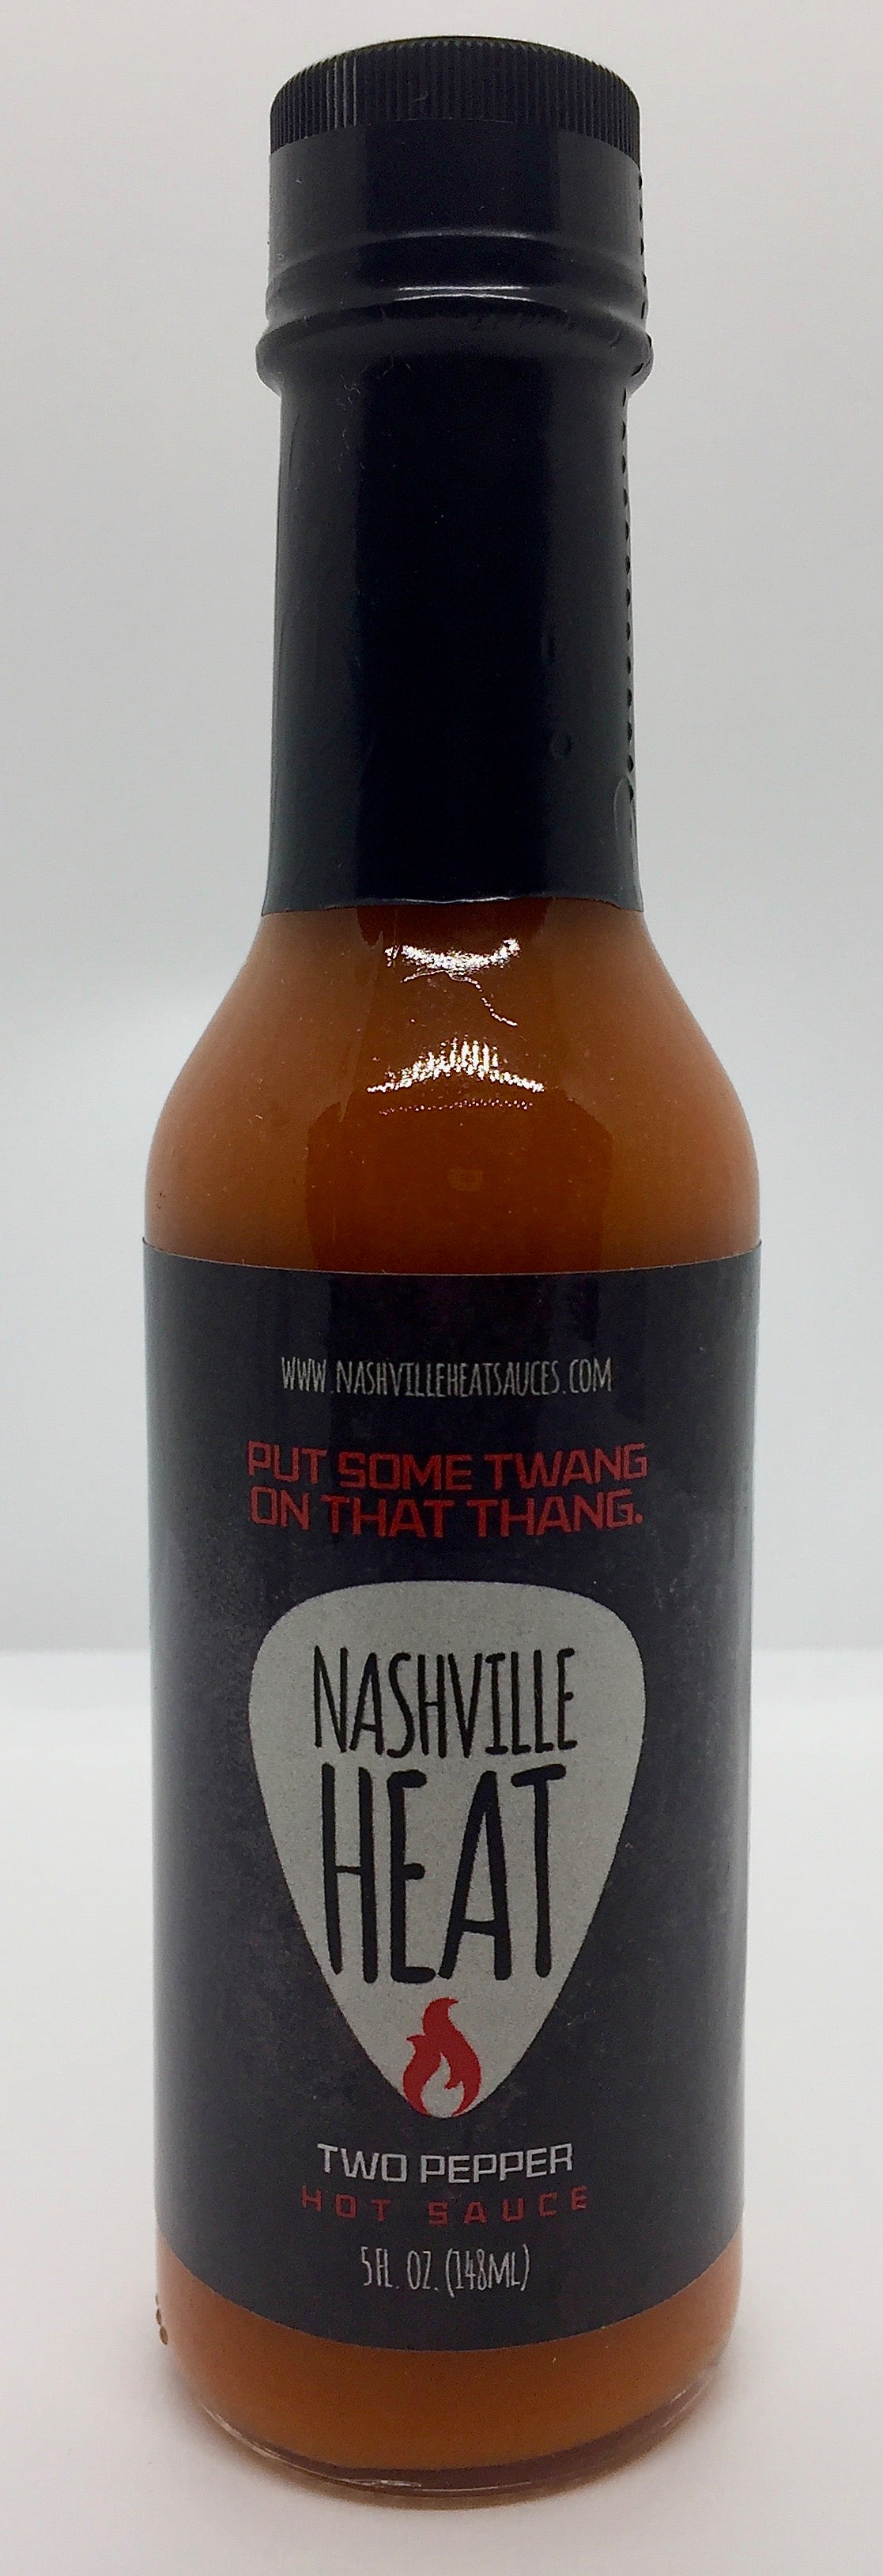 Nashville Heat 2 Pepper Hot Sauce 5oz